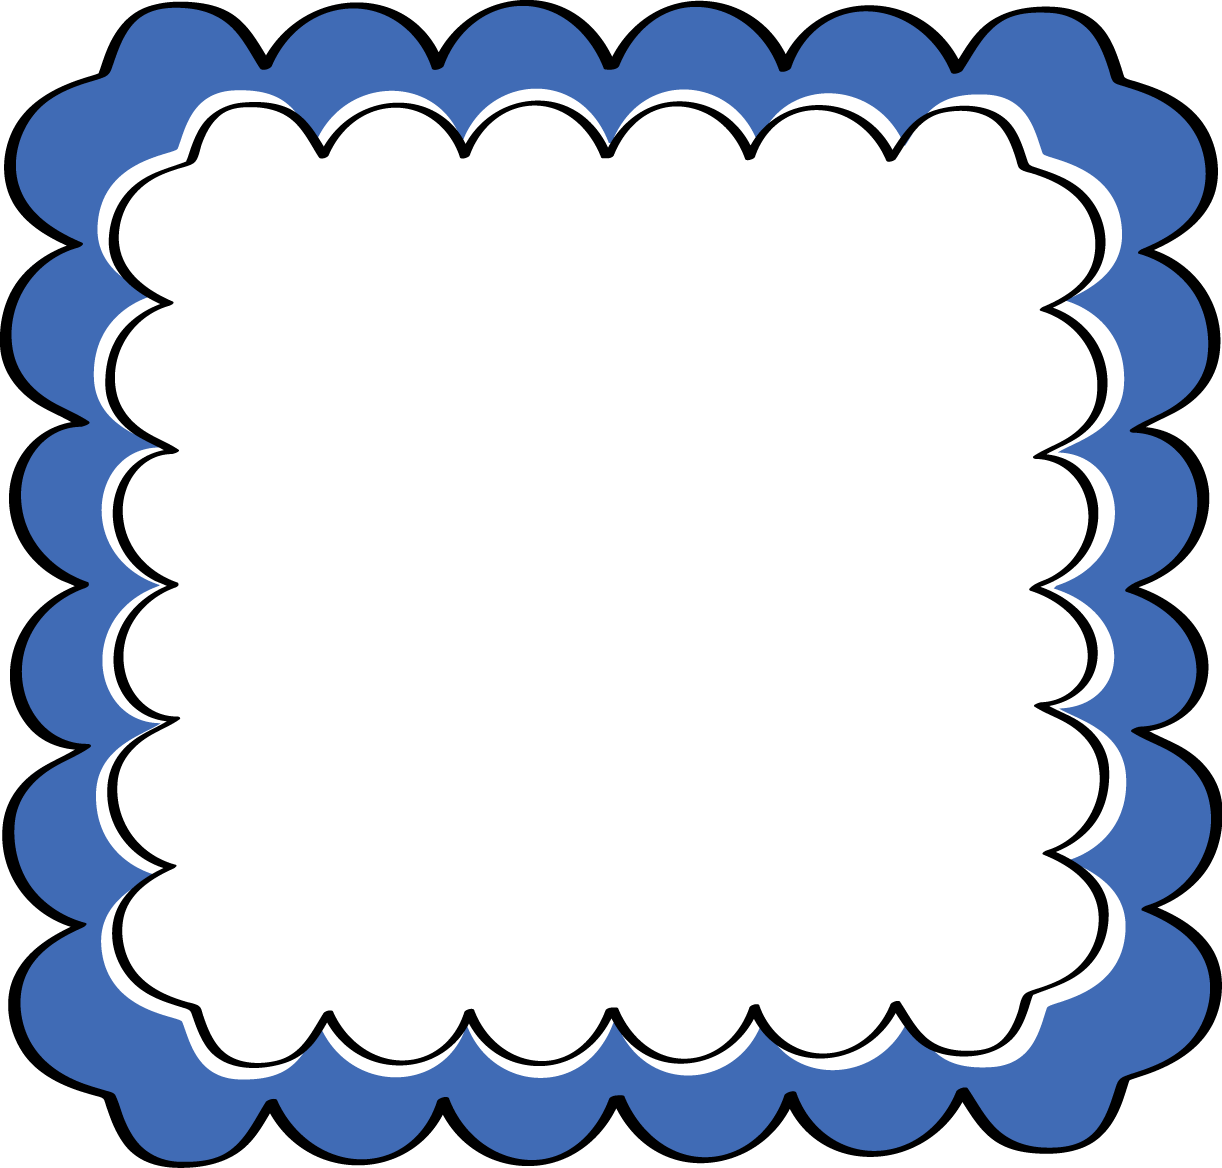 blue scalloped frame free clip art frames rh mycutegraphics com free frame clip art for funeral programs free frame clip art images